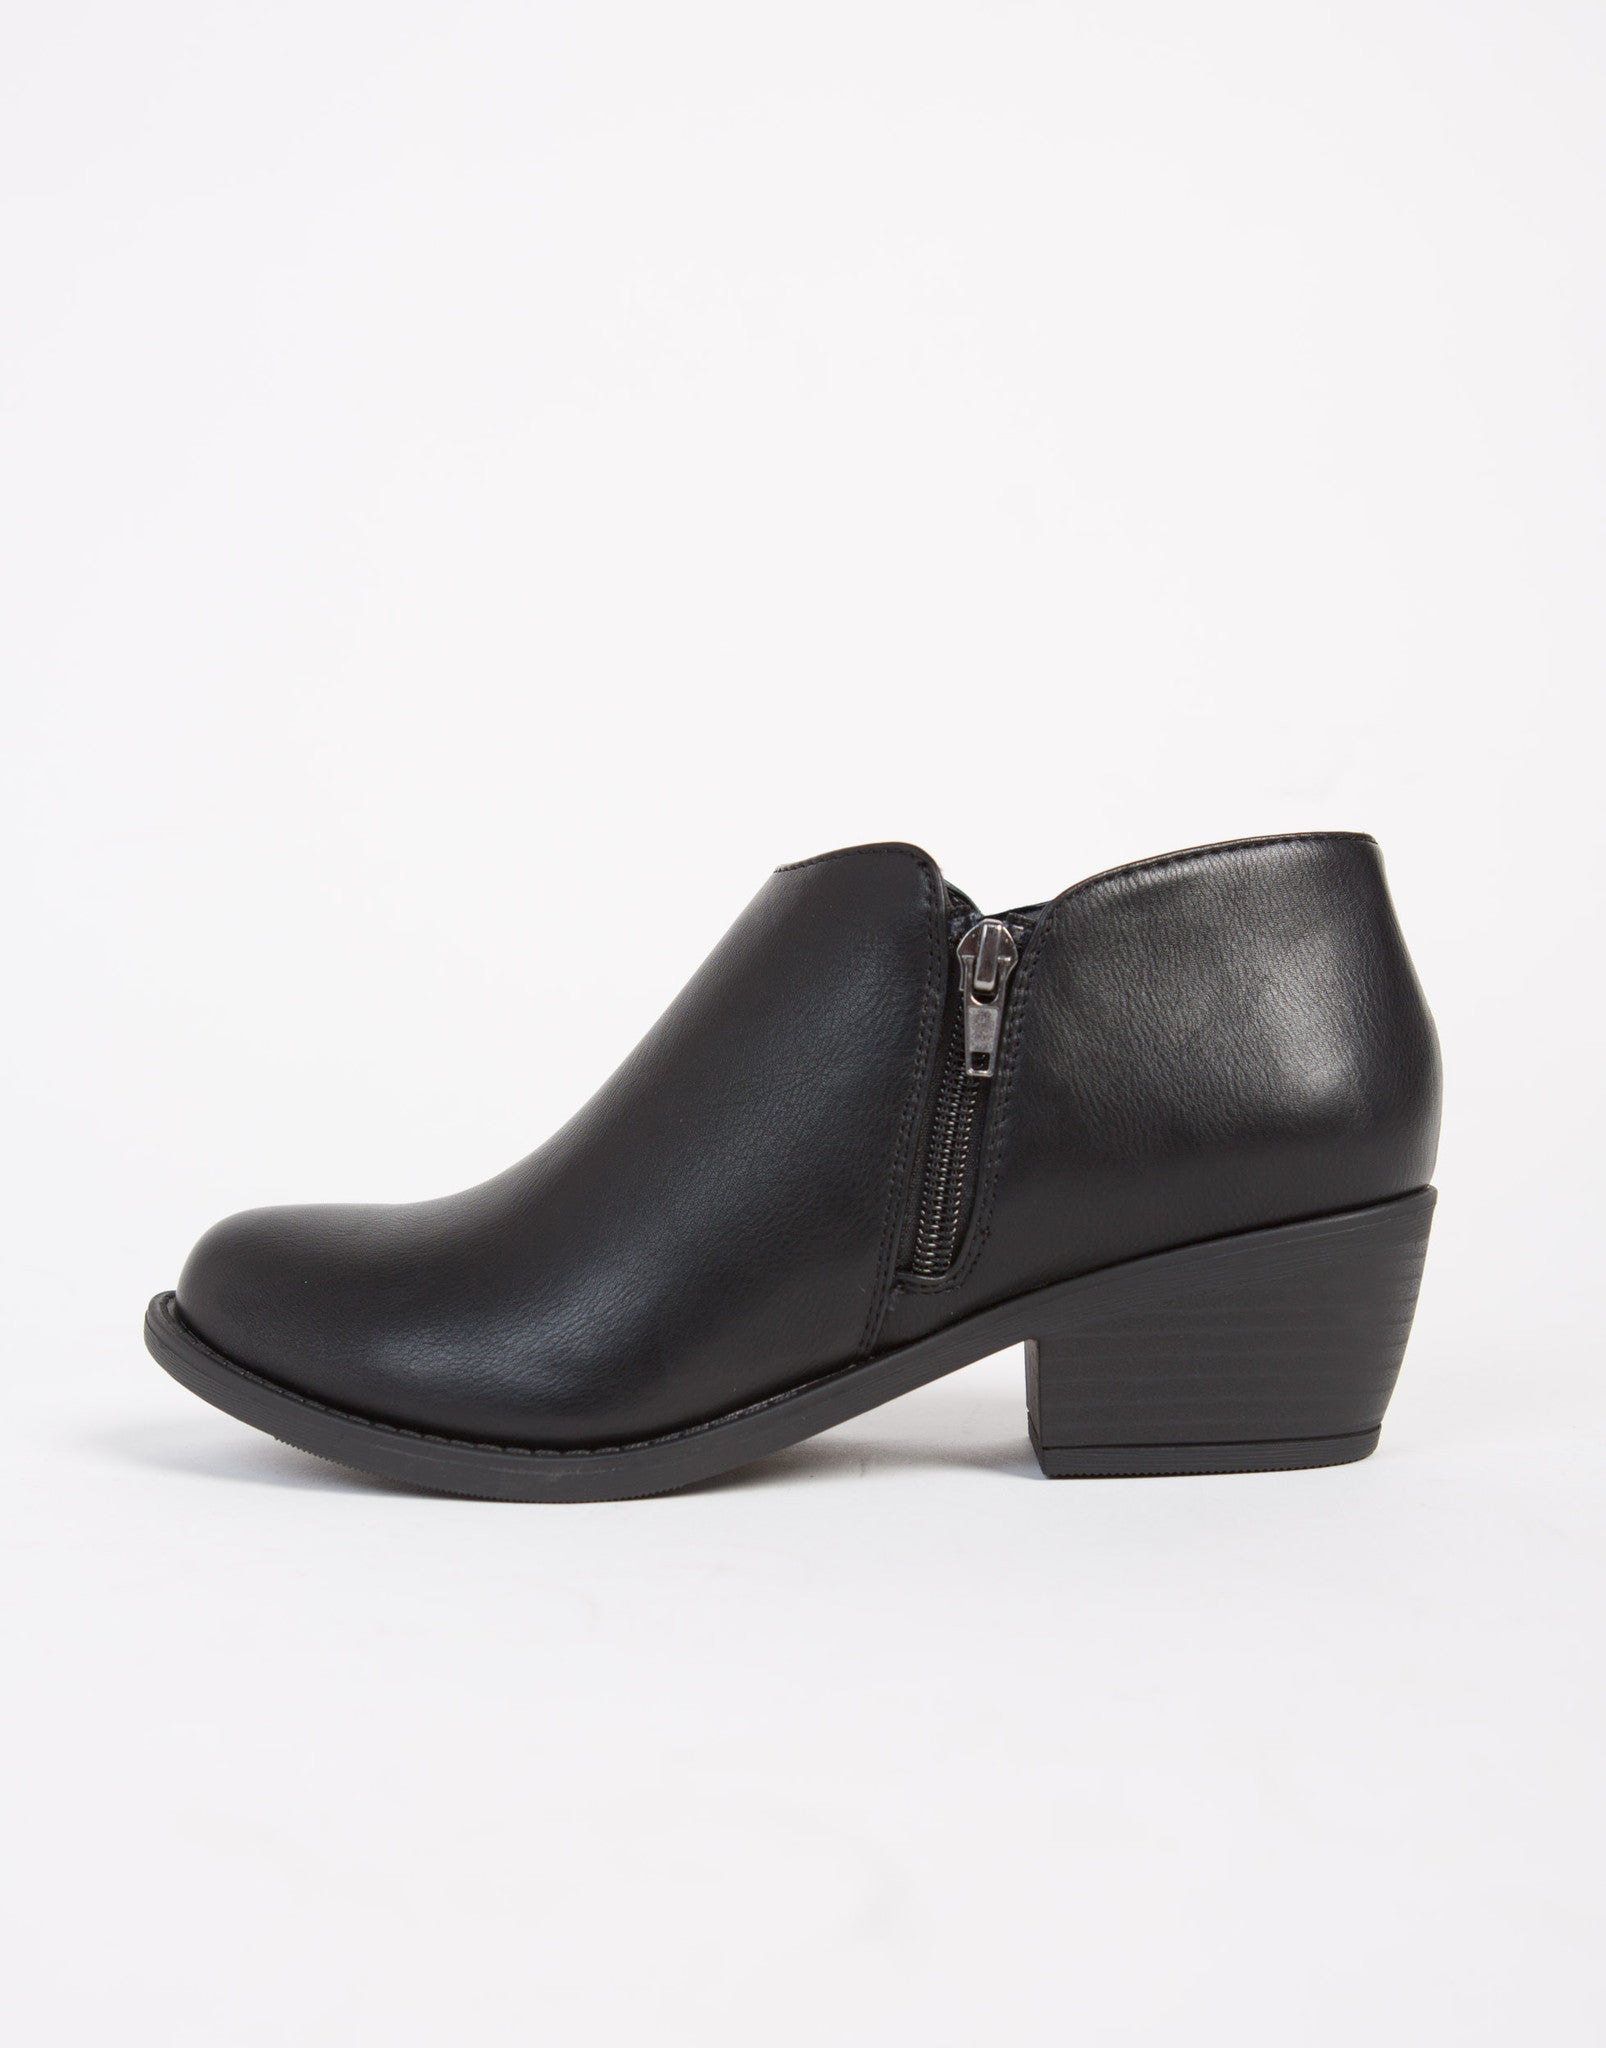 Low Cut Ankle Booties - Black Ankle